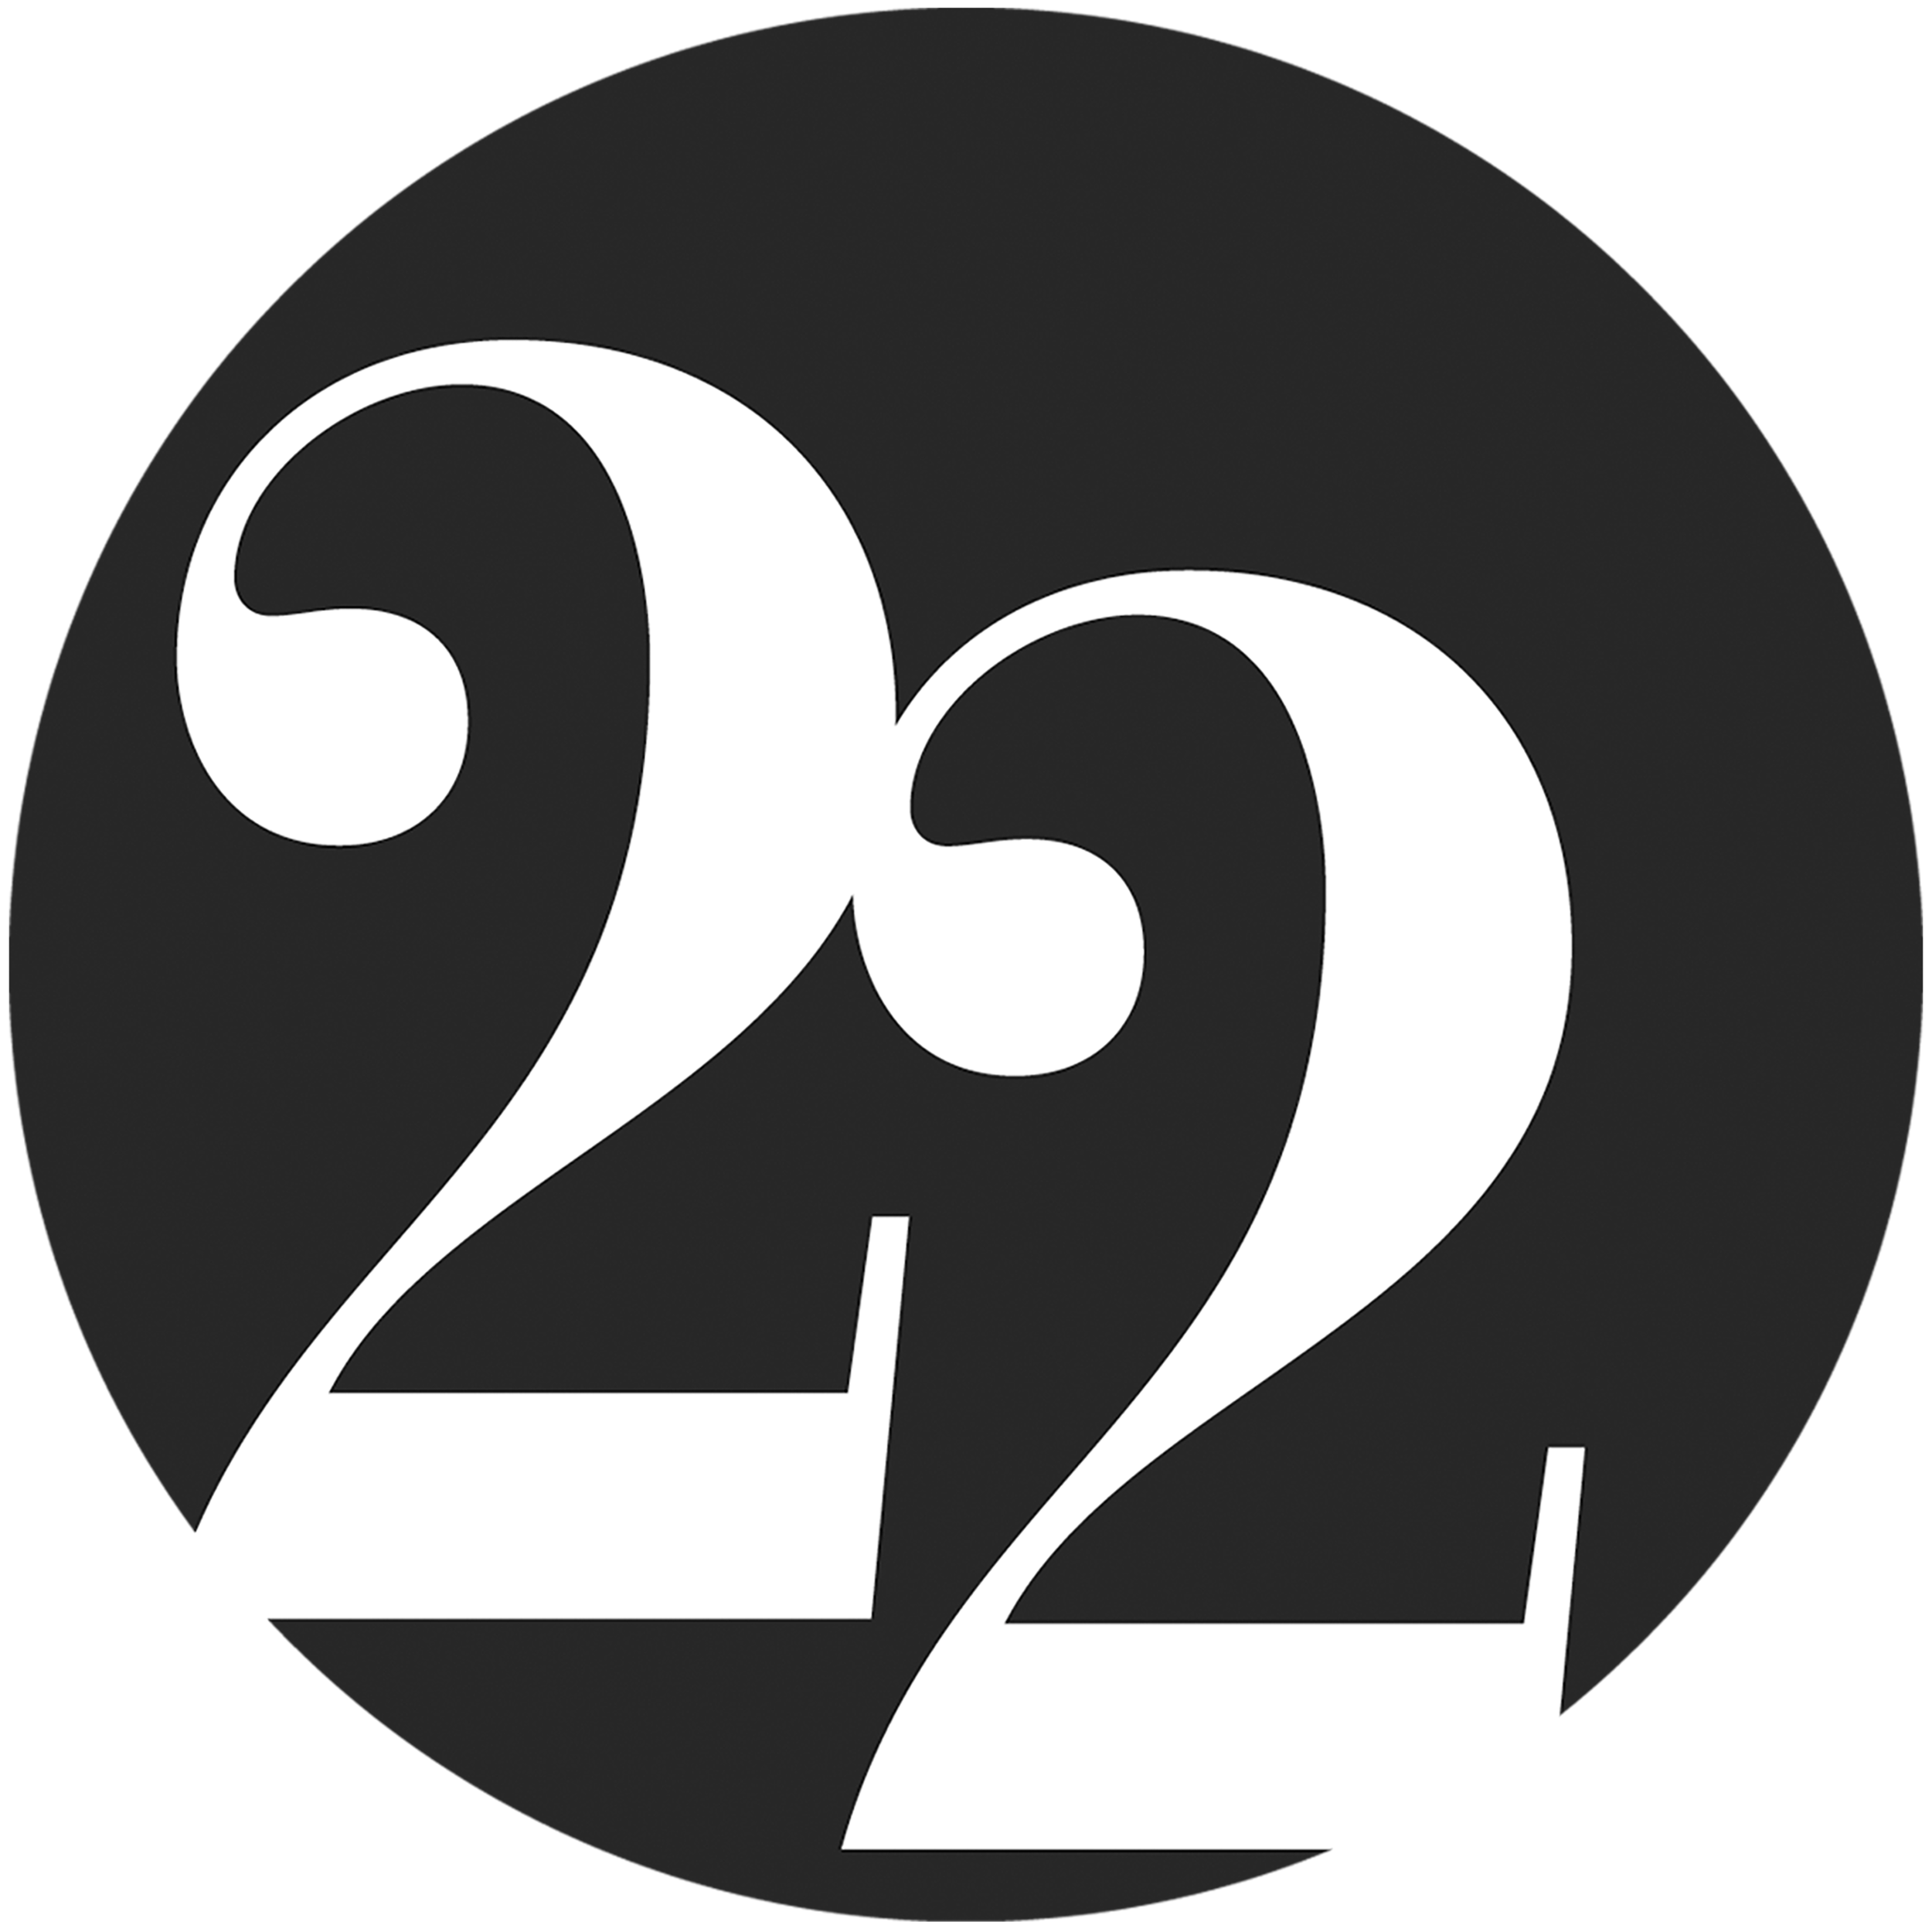 The 22 Club   Originally based in Manhattan, this private group keeps its by-laws close-to-the-chest.